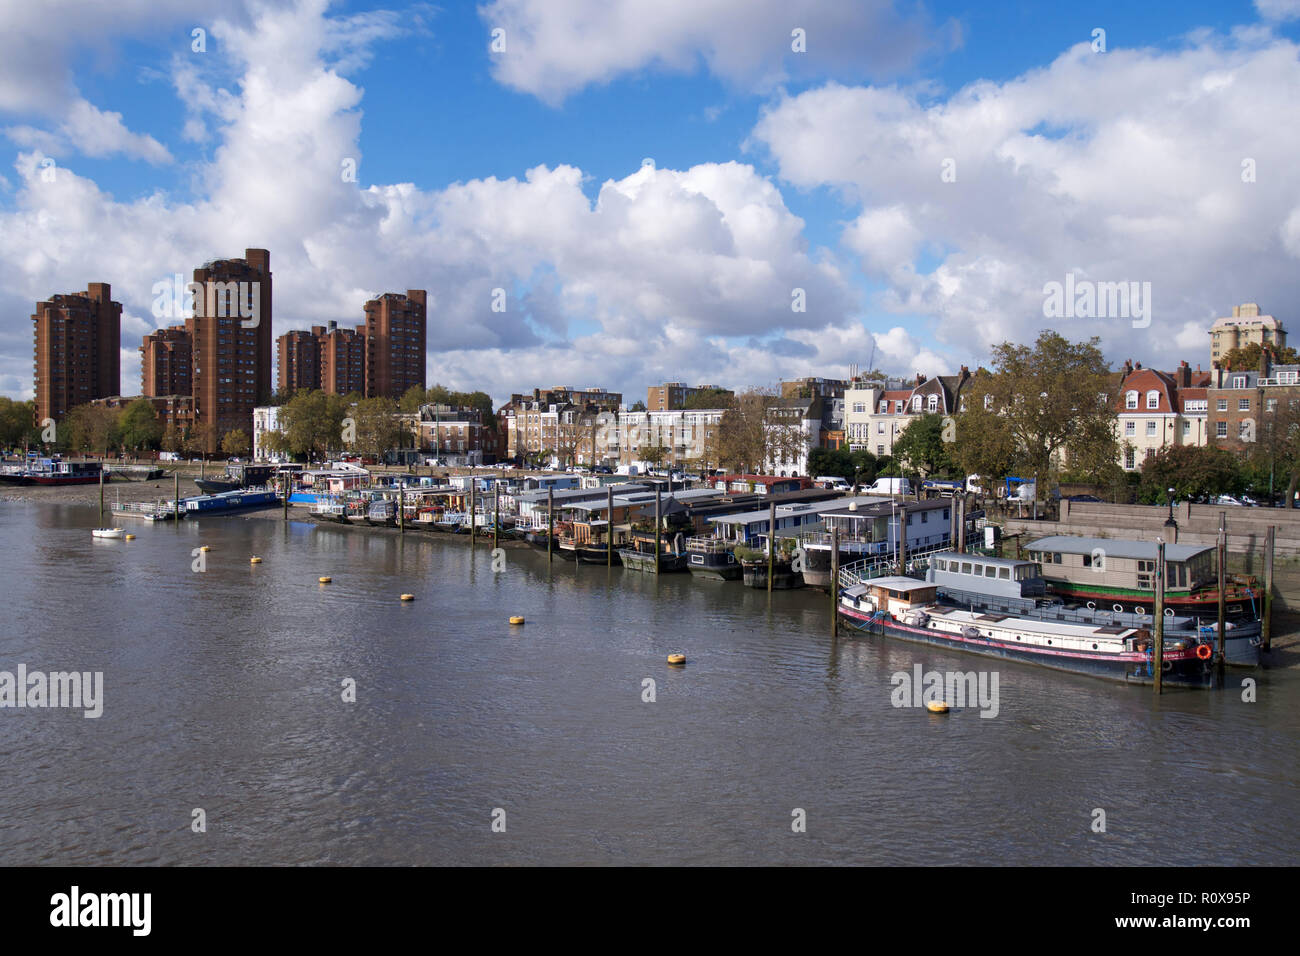 House boats on the River Thames at Cheyne Walk, London - Stock Image